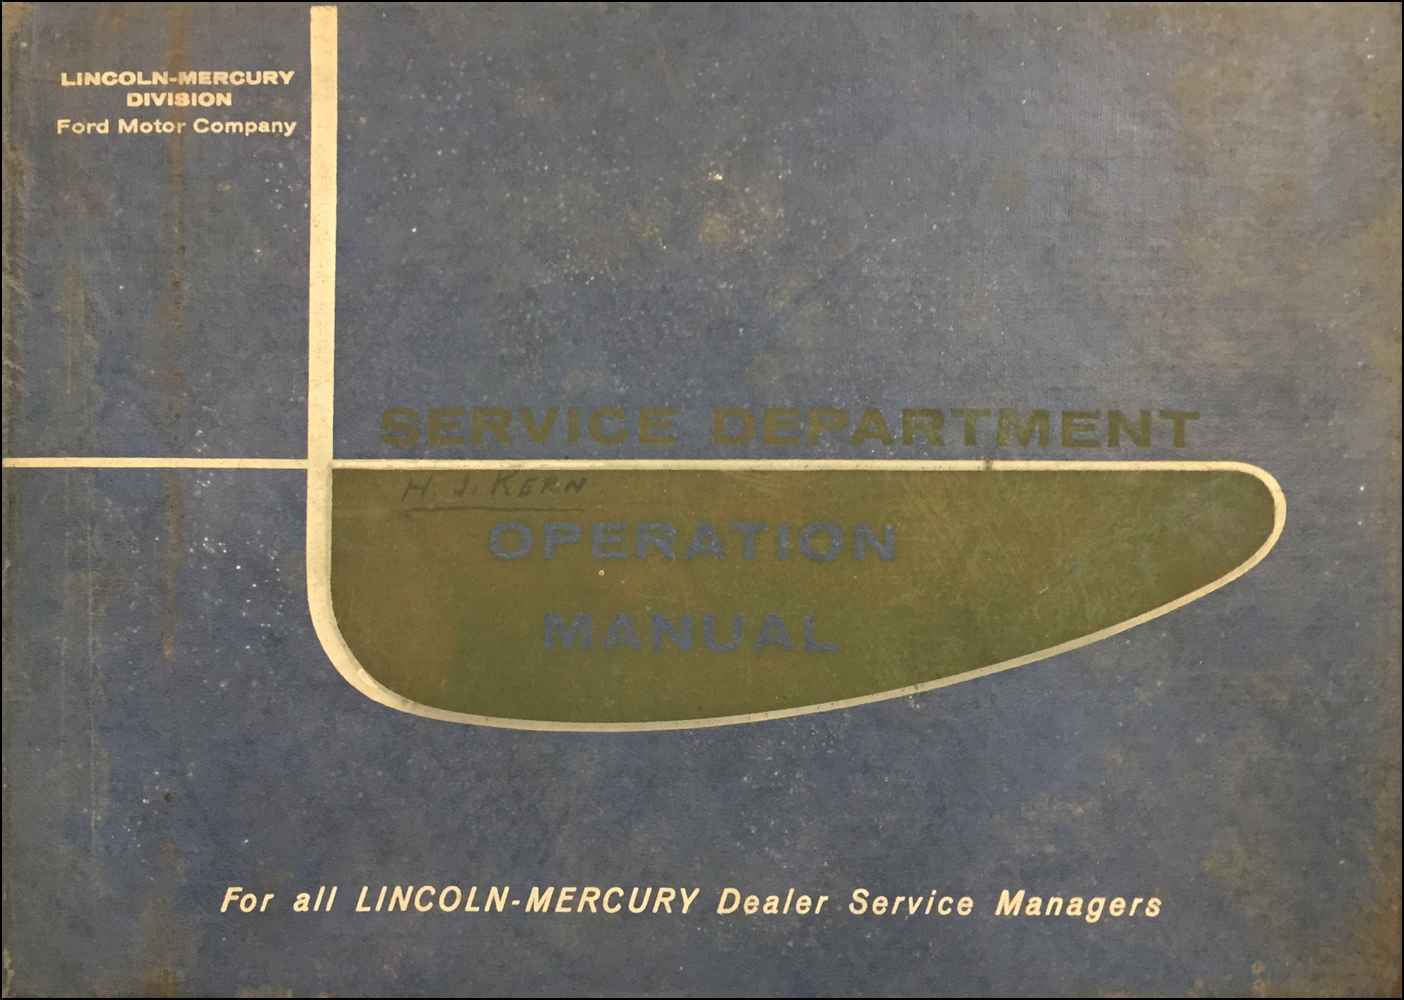 1960 Lincoln/Mercury Service Department Operation Manual Dealer Album Original